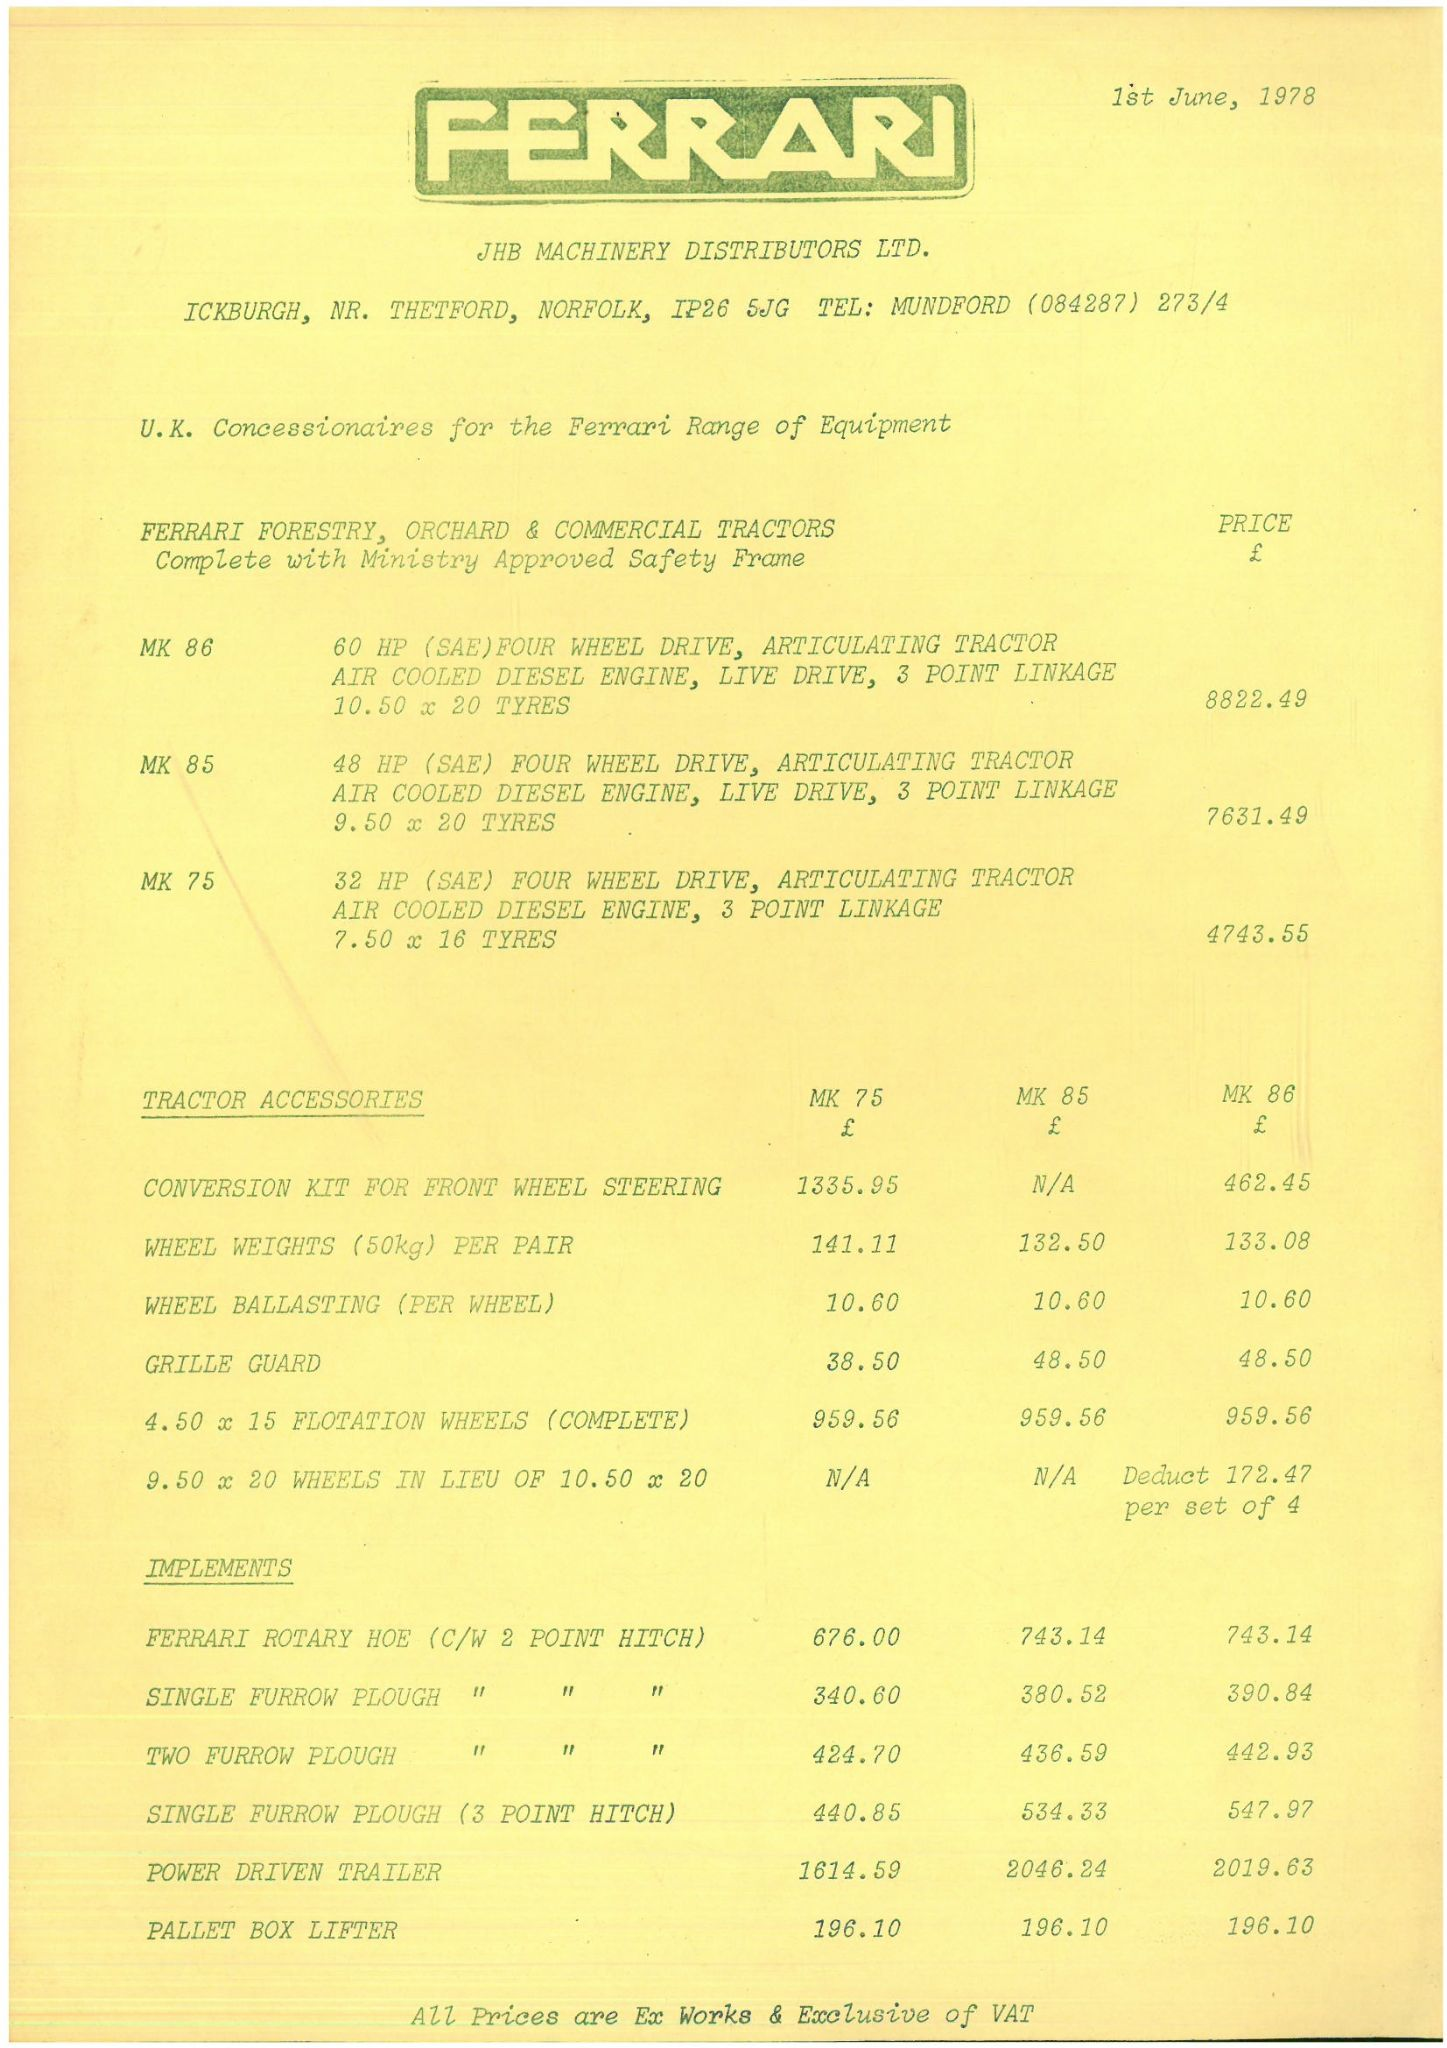 Ferrari Tractor Mk75 Mk85 Mk86 Price List Dated 1st June 1978